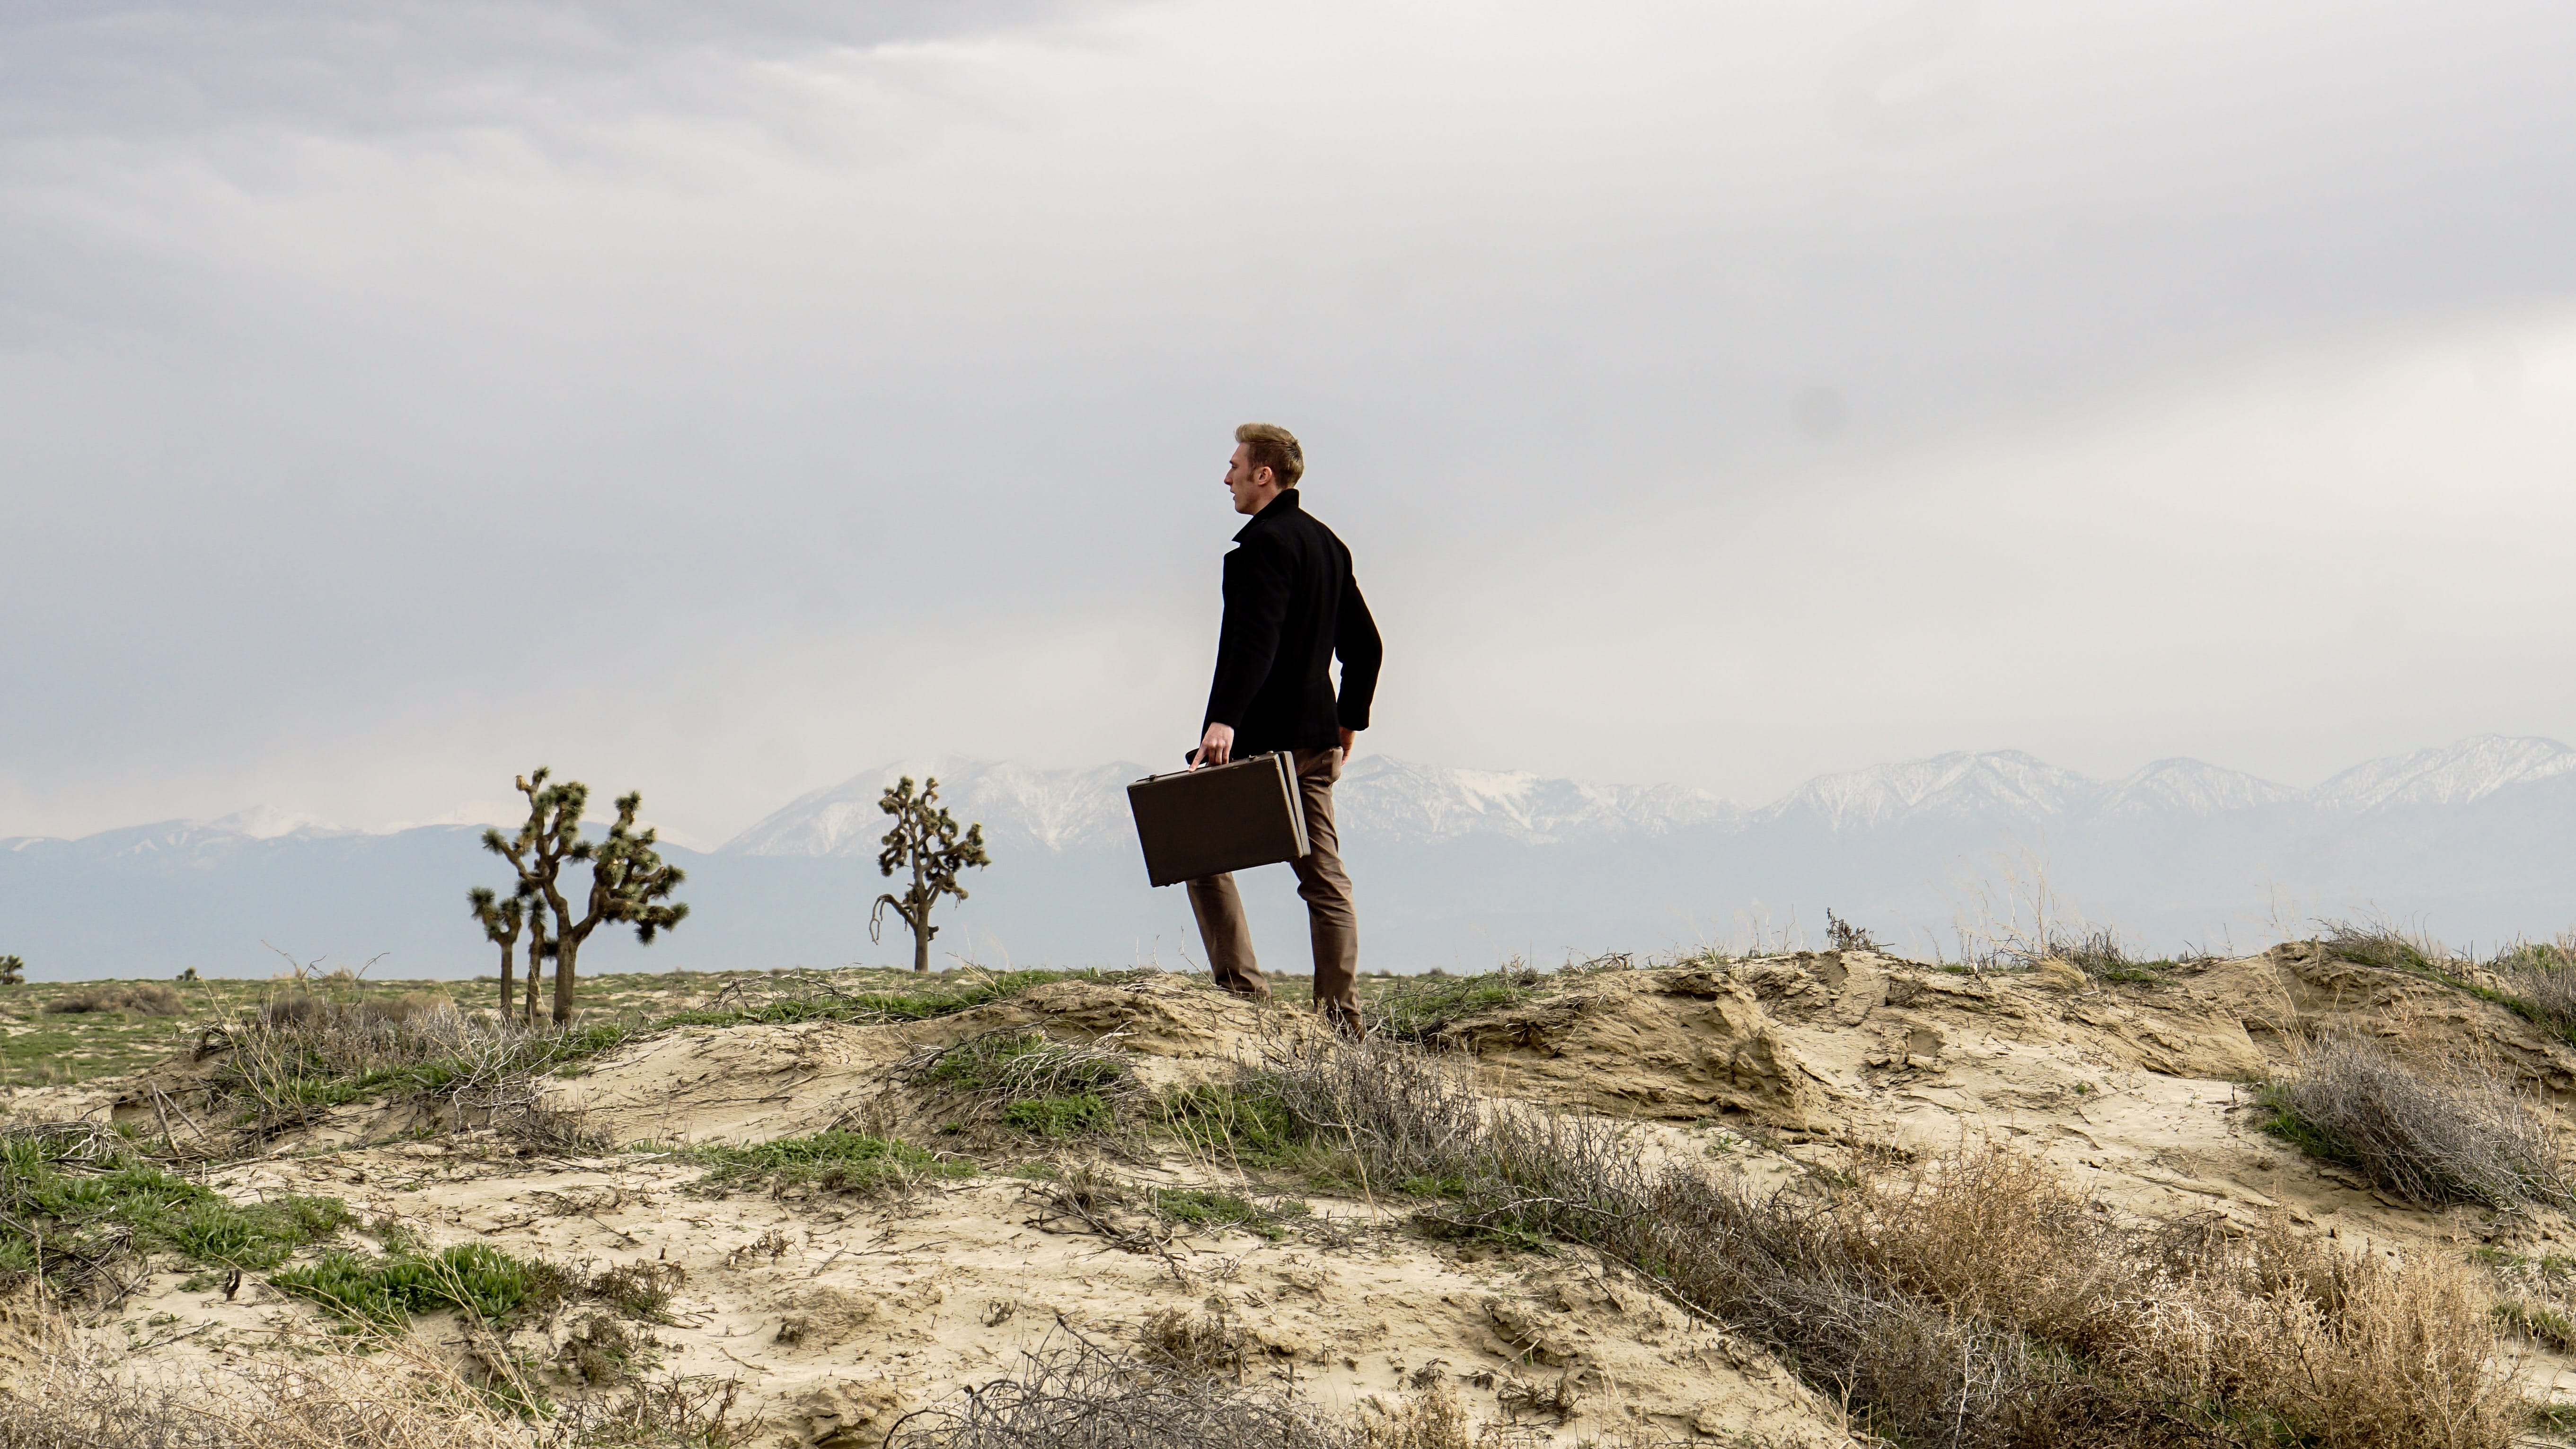 man with a briefcase in a desert